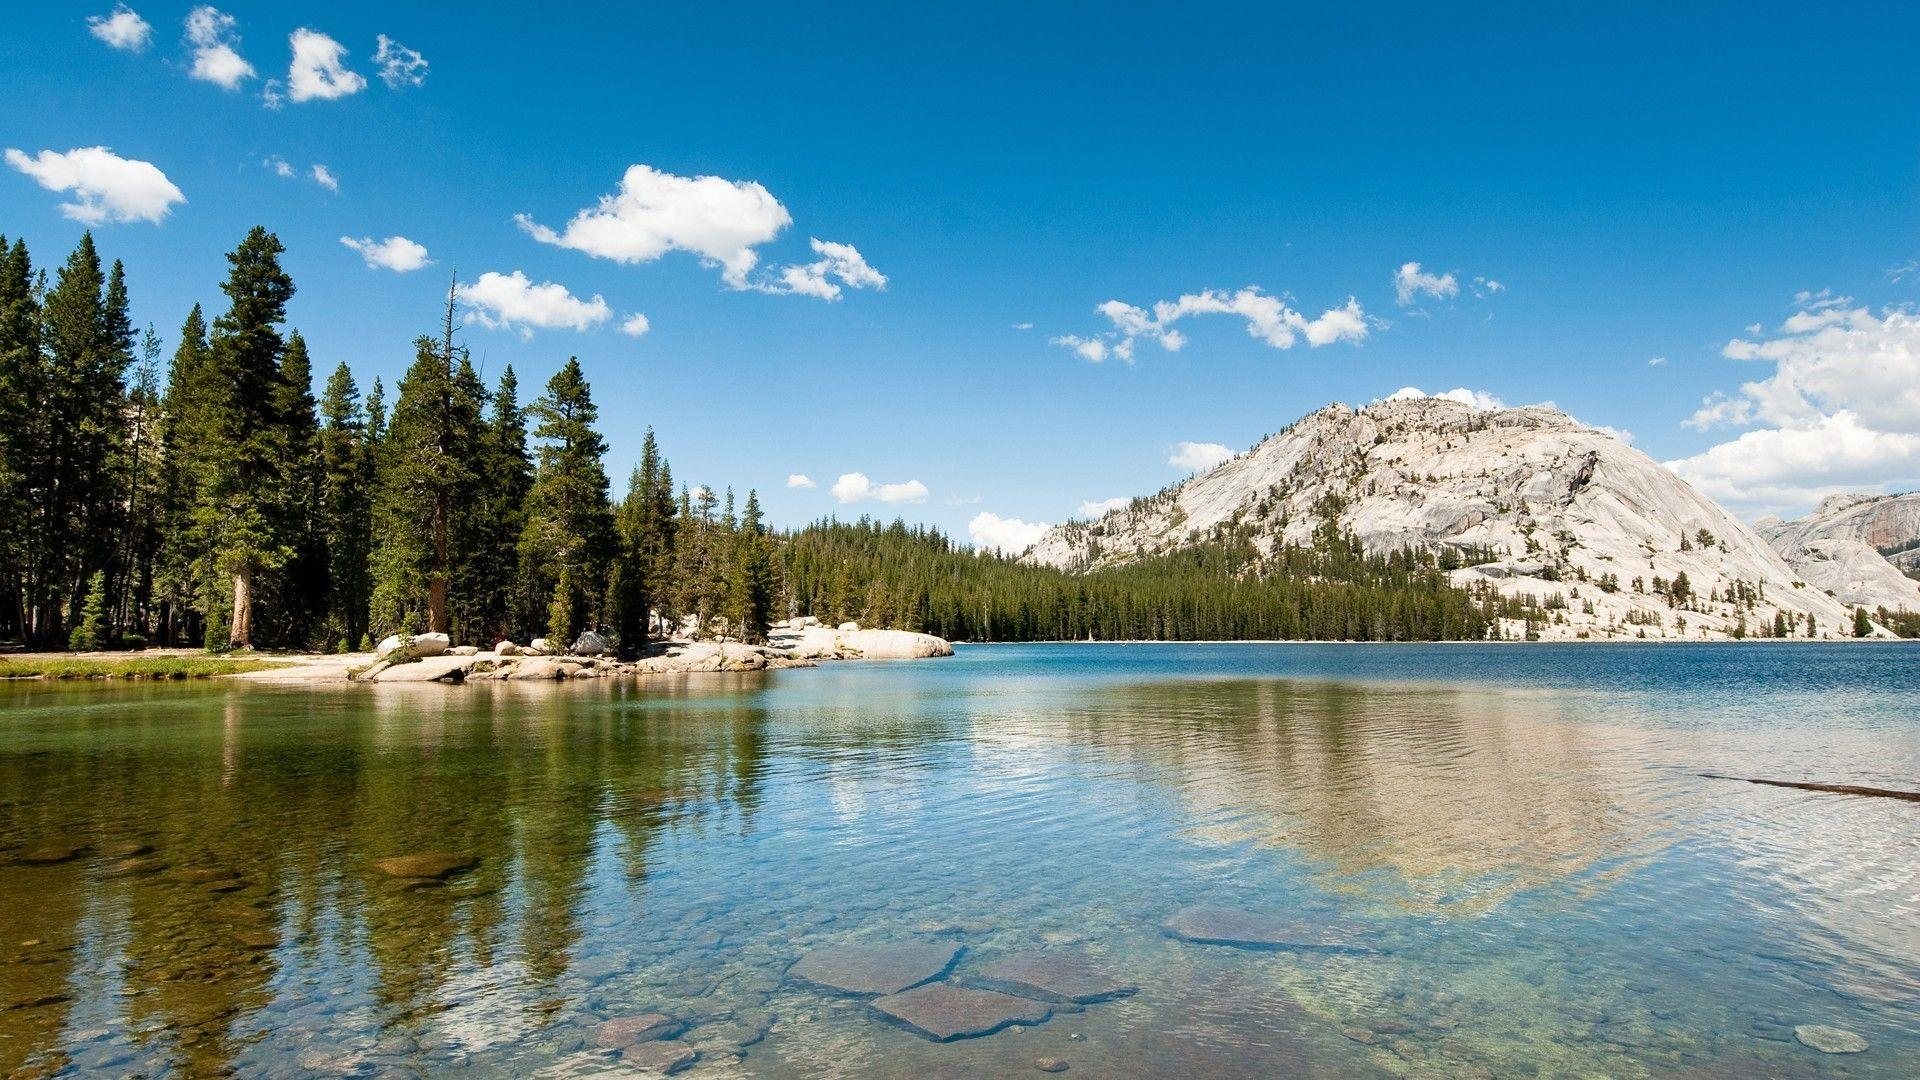 landscape nature lake hills forest pine trees yosemite national park